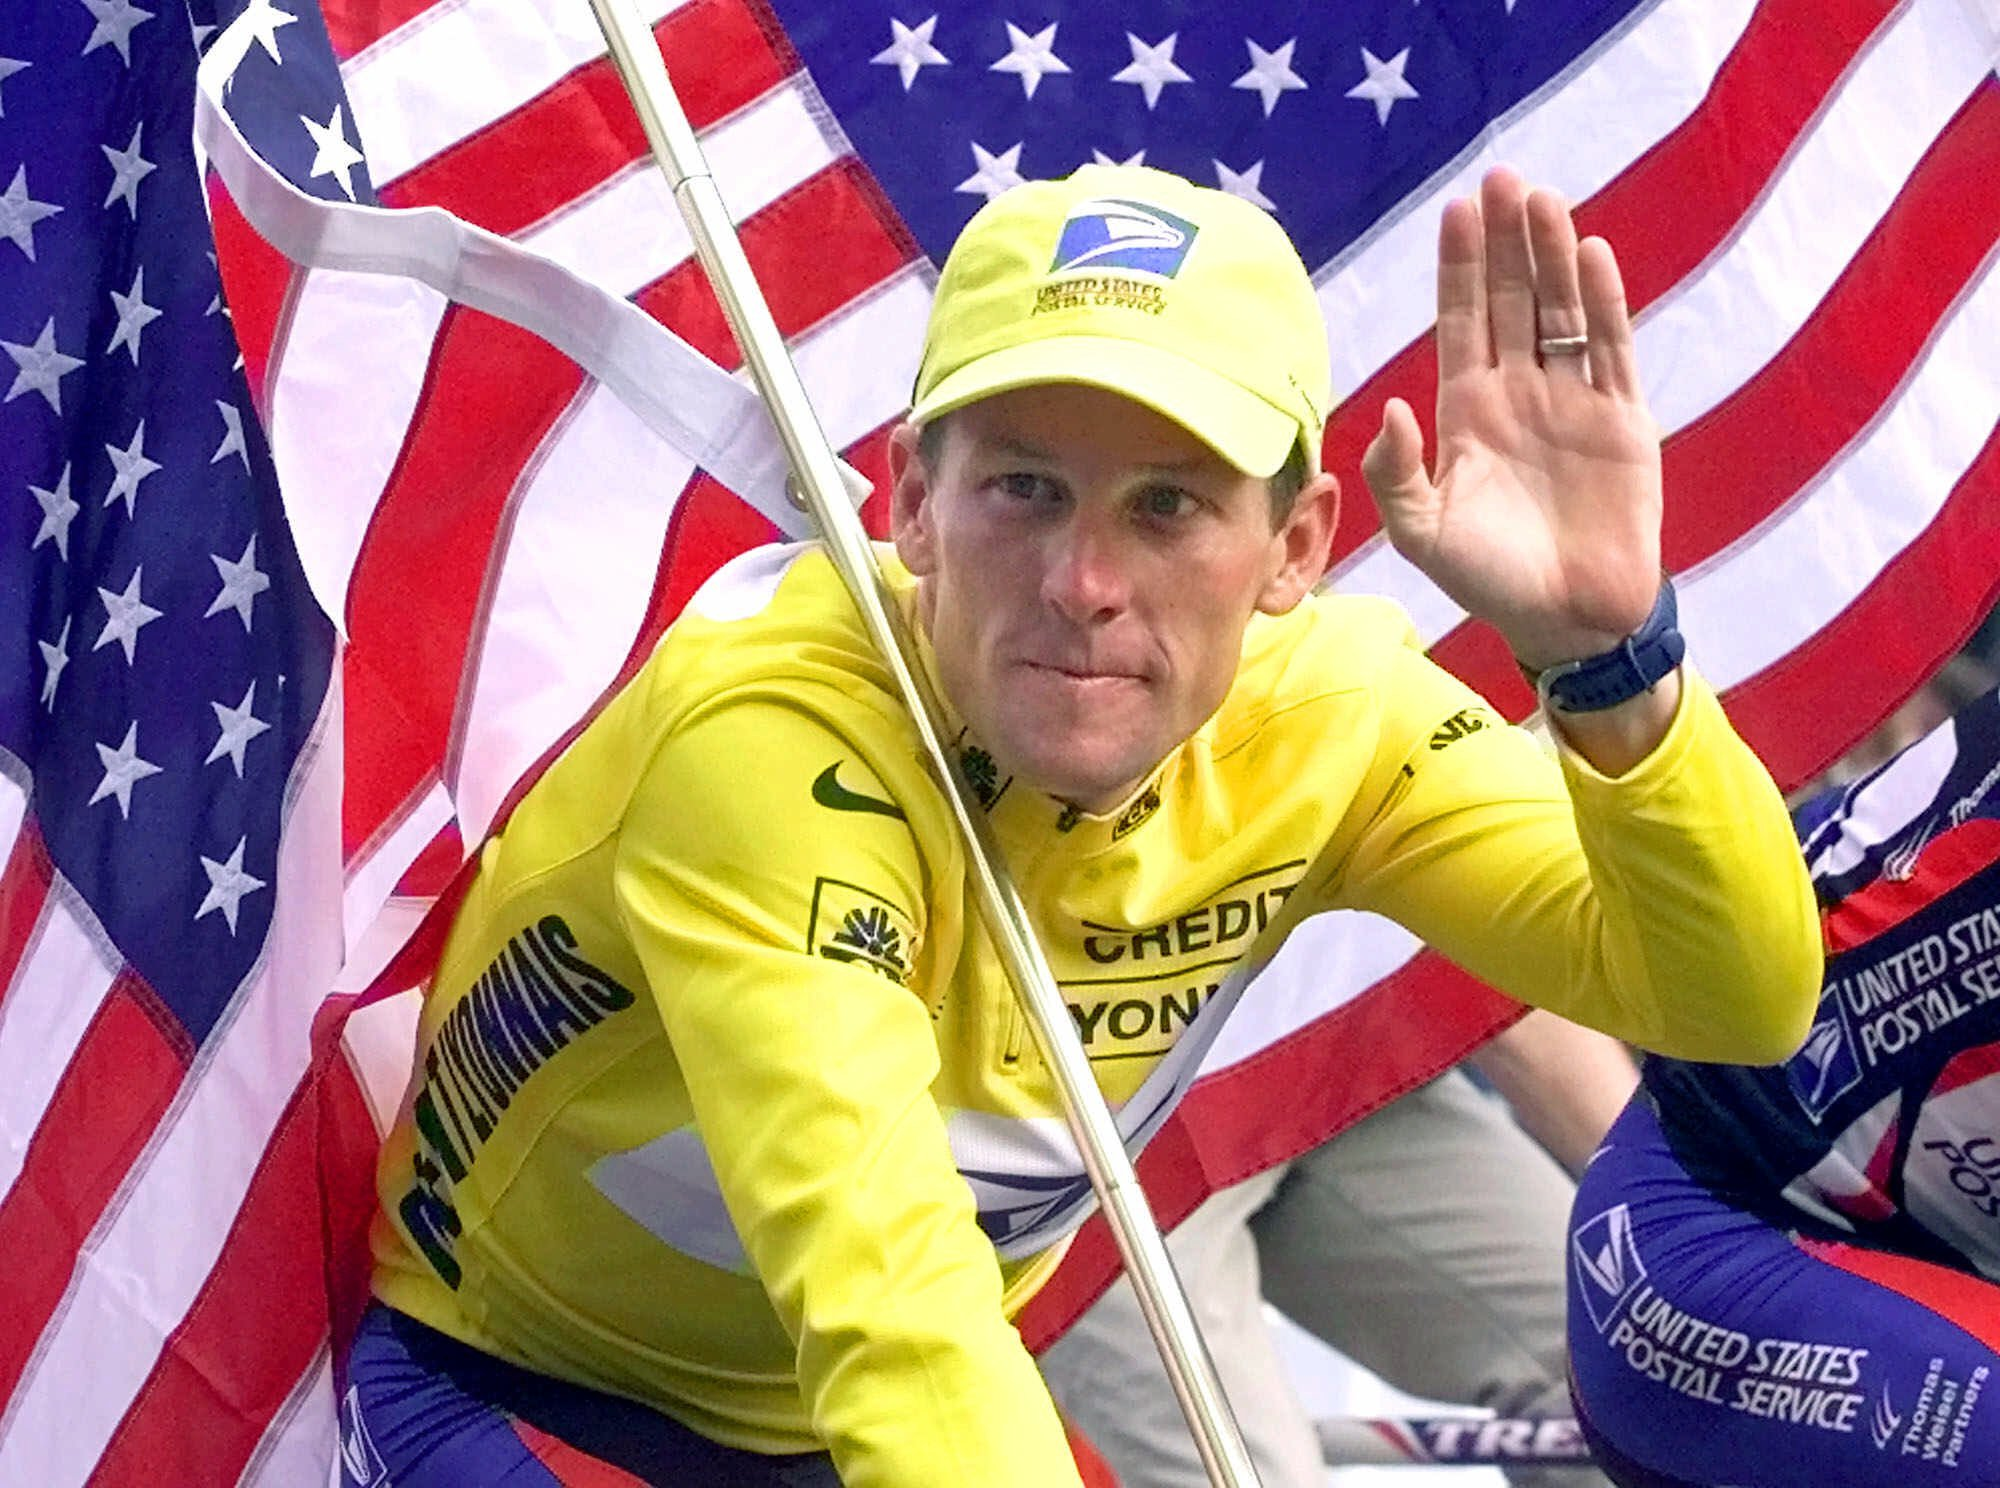 Armstrong won his second straight Tour de France in 2000.